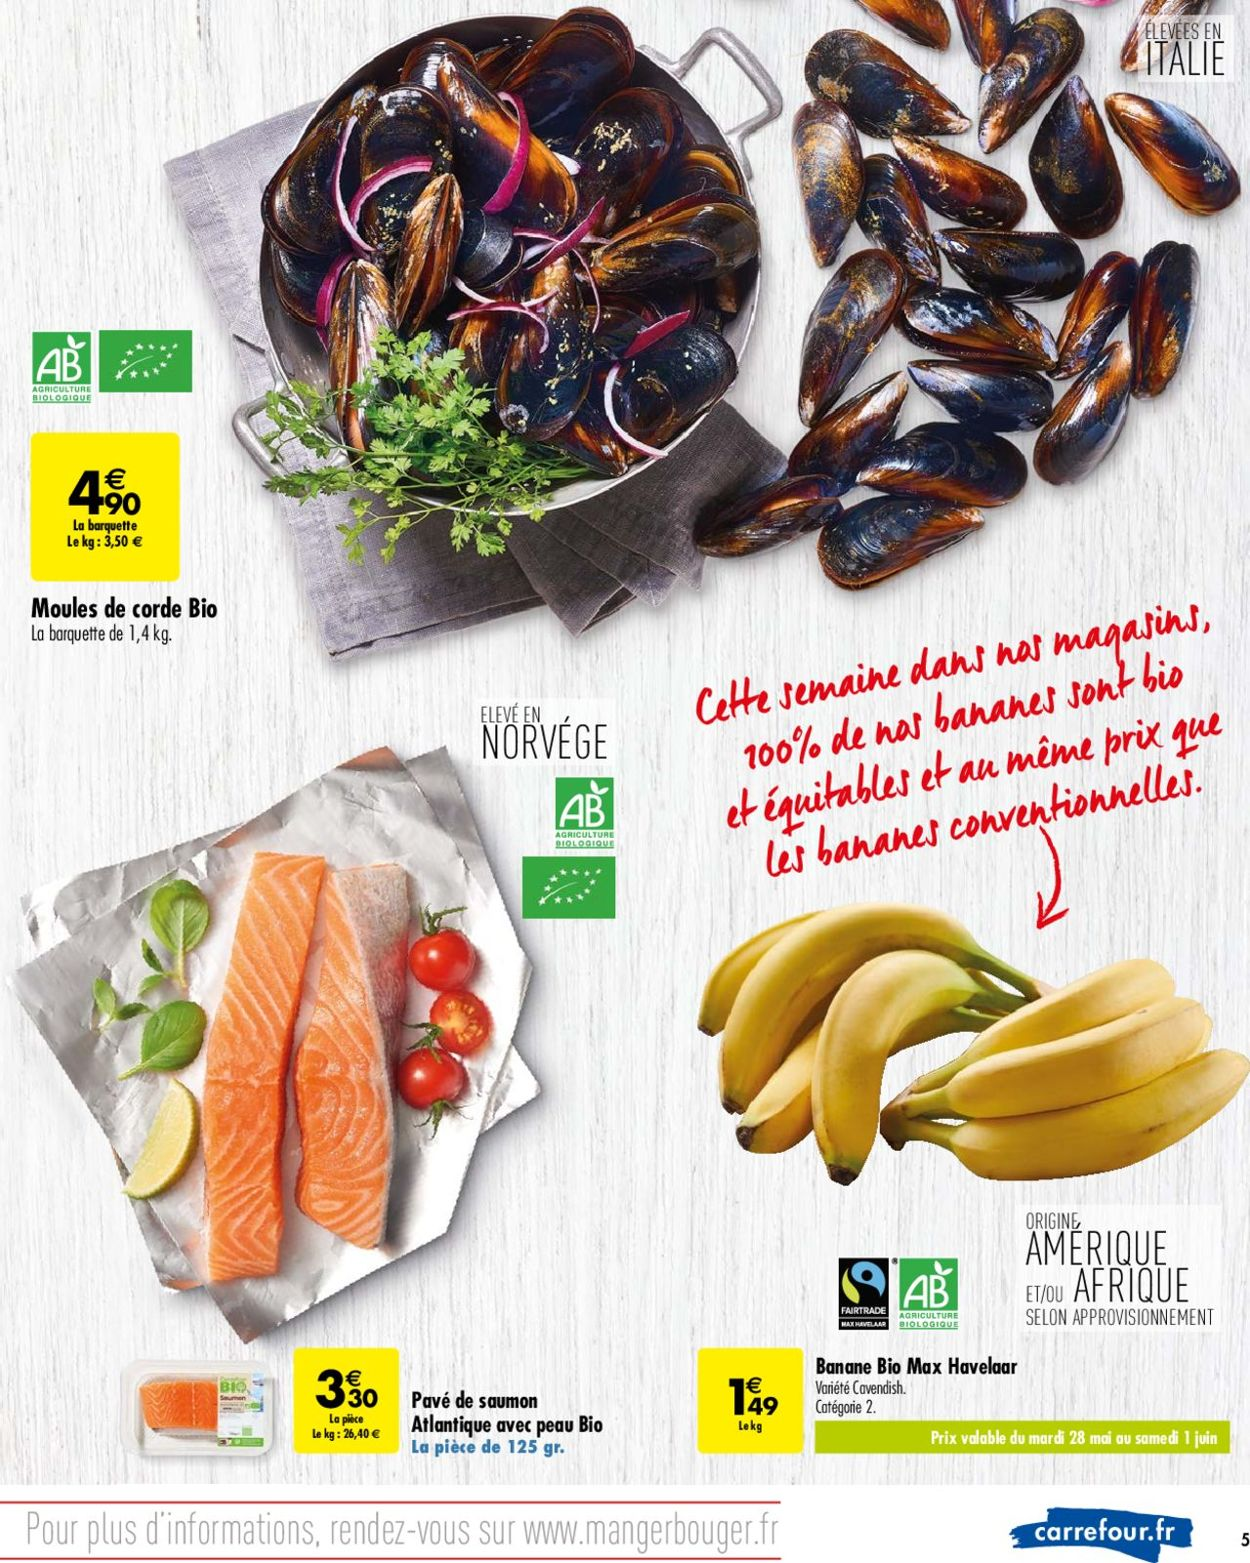 Carrefour Catalogue - 04.06-17.06.2019 (Page 5)